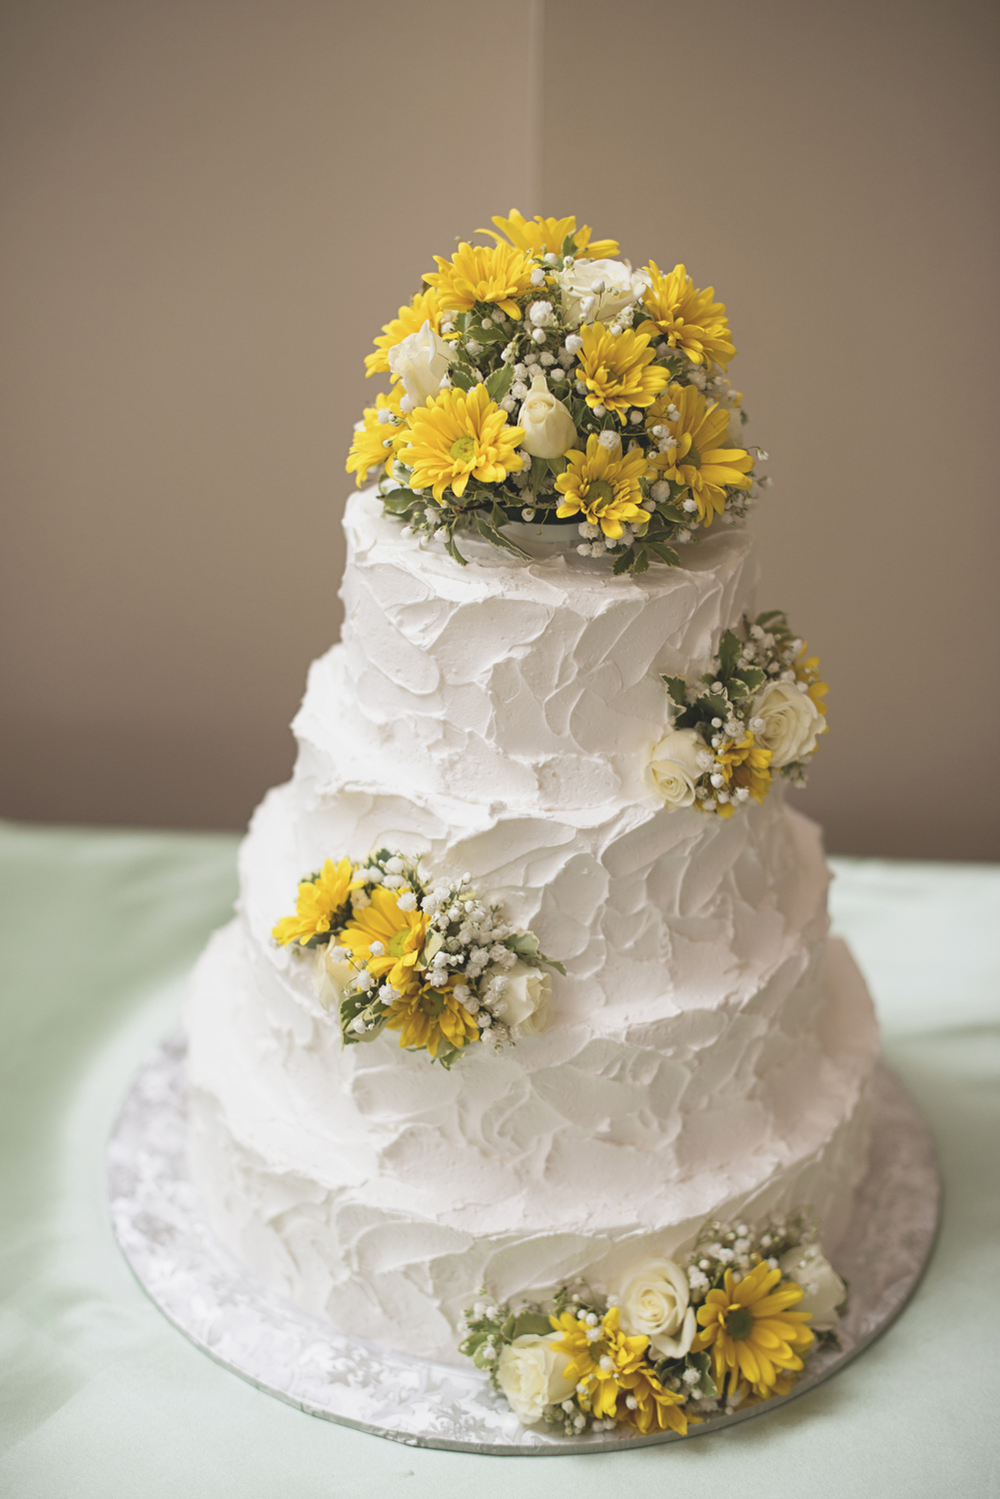 Confederate Hills Recreation Center Wedding | Richmond, Virginia Wedding | Yellow and white wedding cake